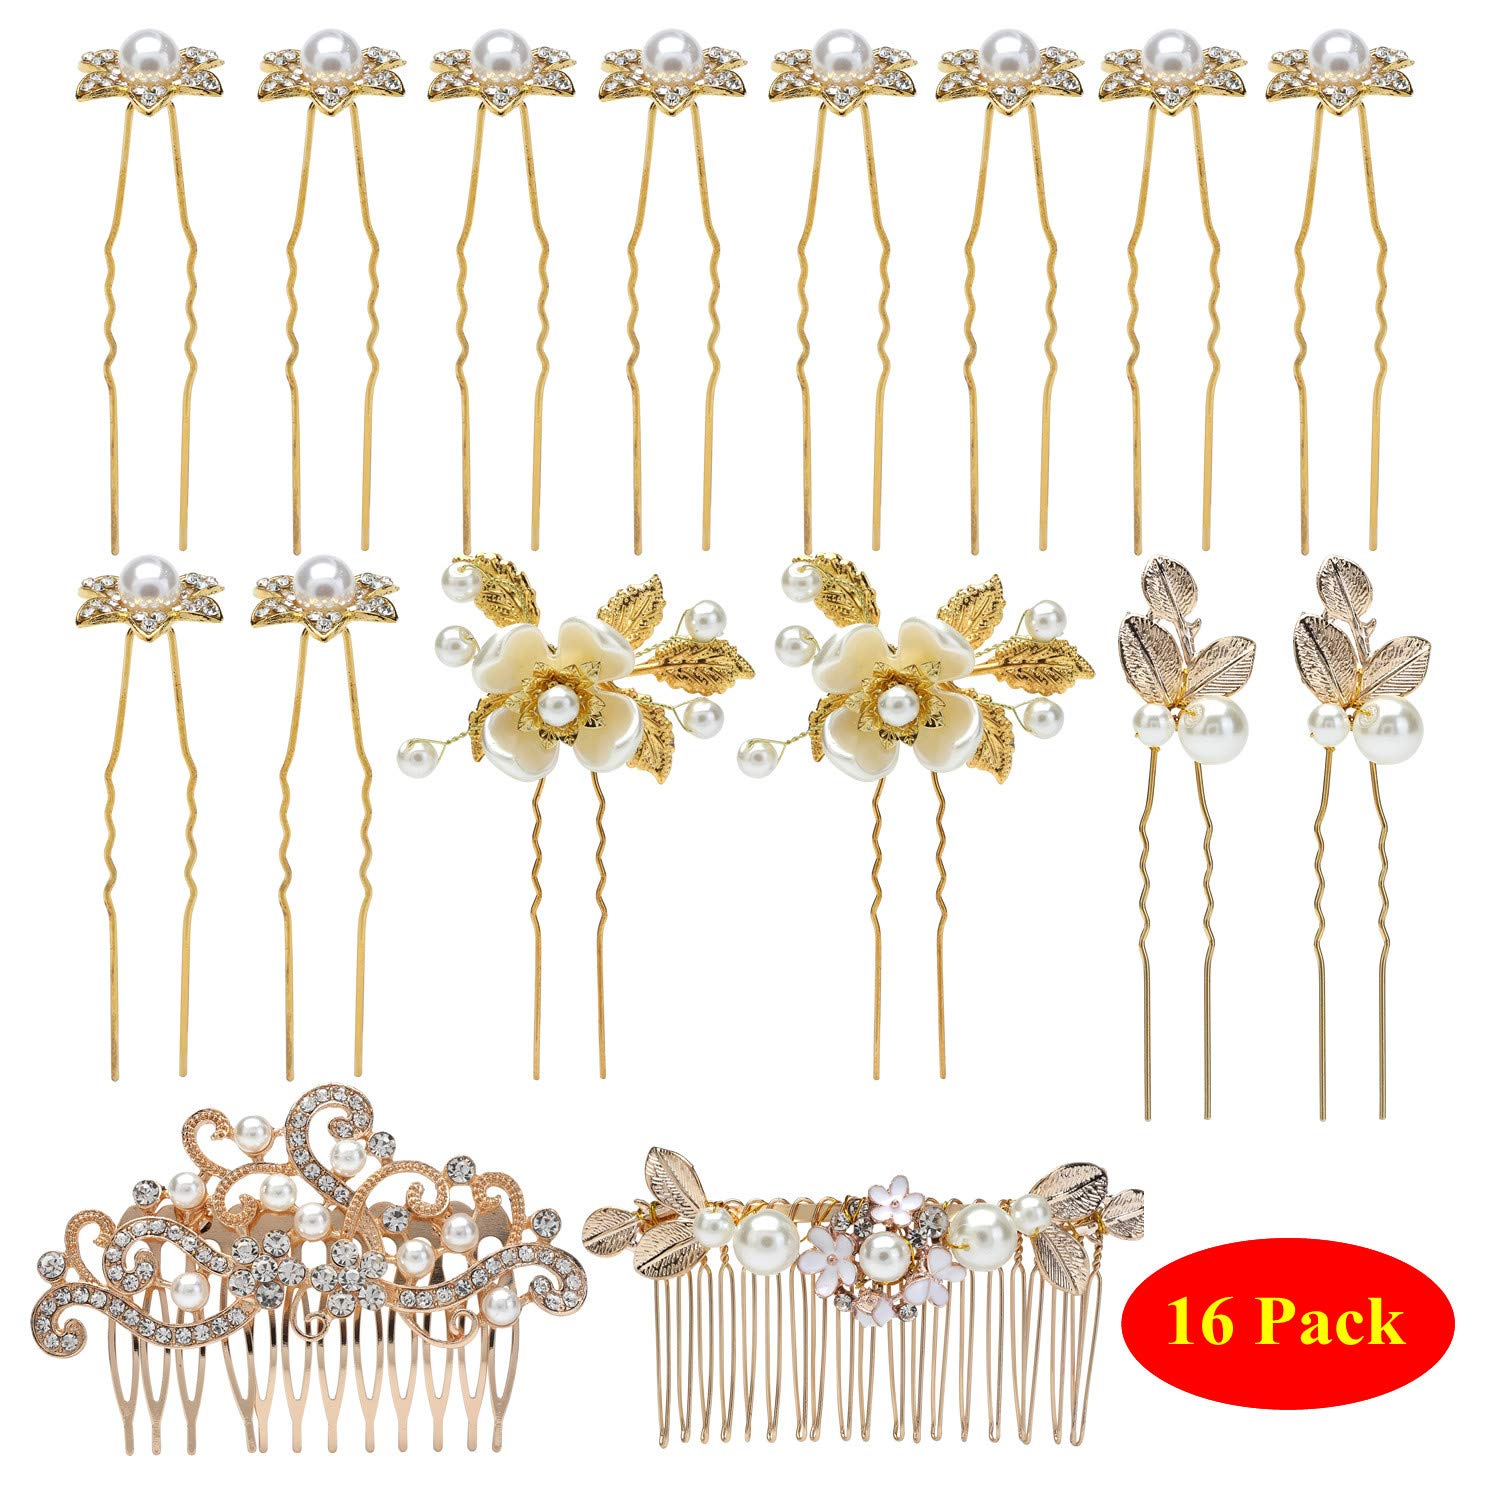 inSowni 16 Pack Wedding Headpieces Hair Side Combs+U Shaped Hair Pins Clips Pieces Barrettes Accessories Rhinestone Pearl Flower Gold for Women Girls Brides Bridsmaids